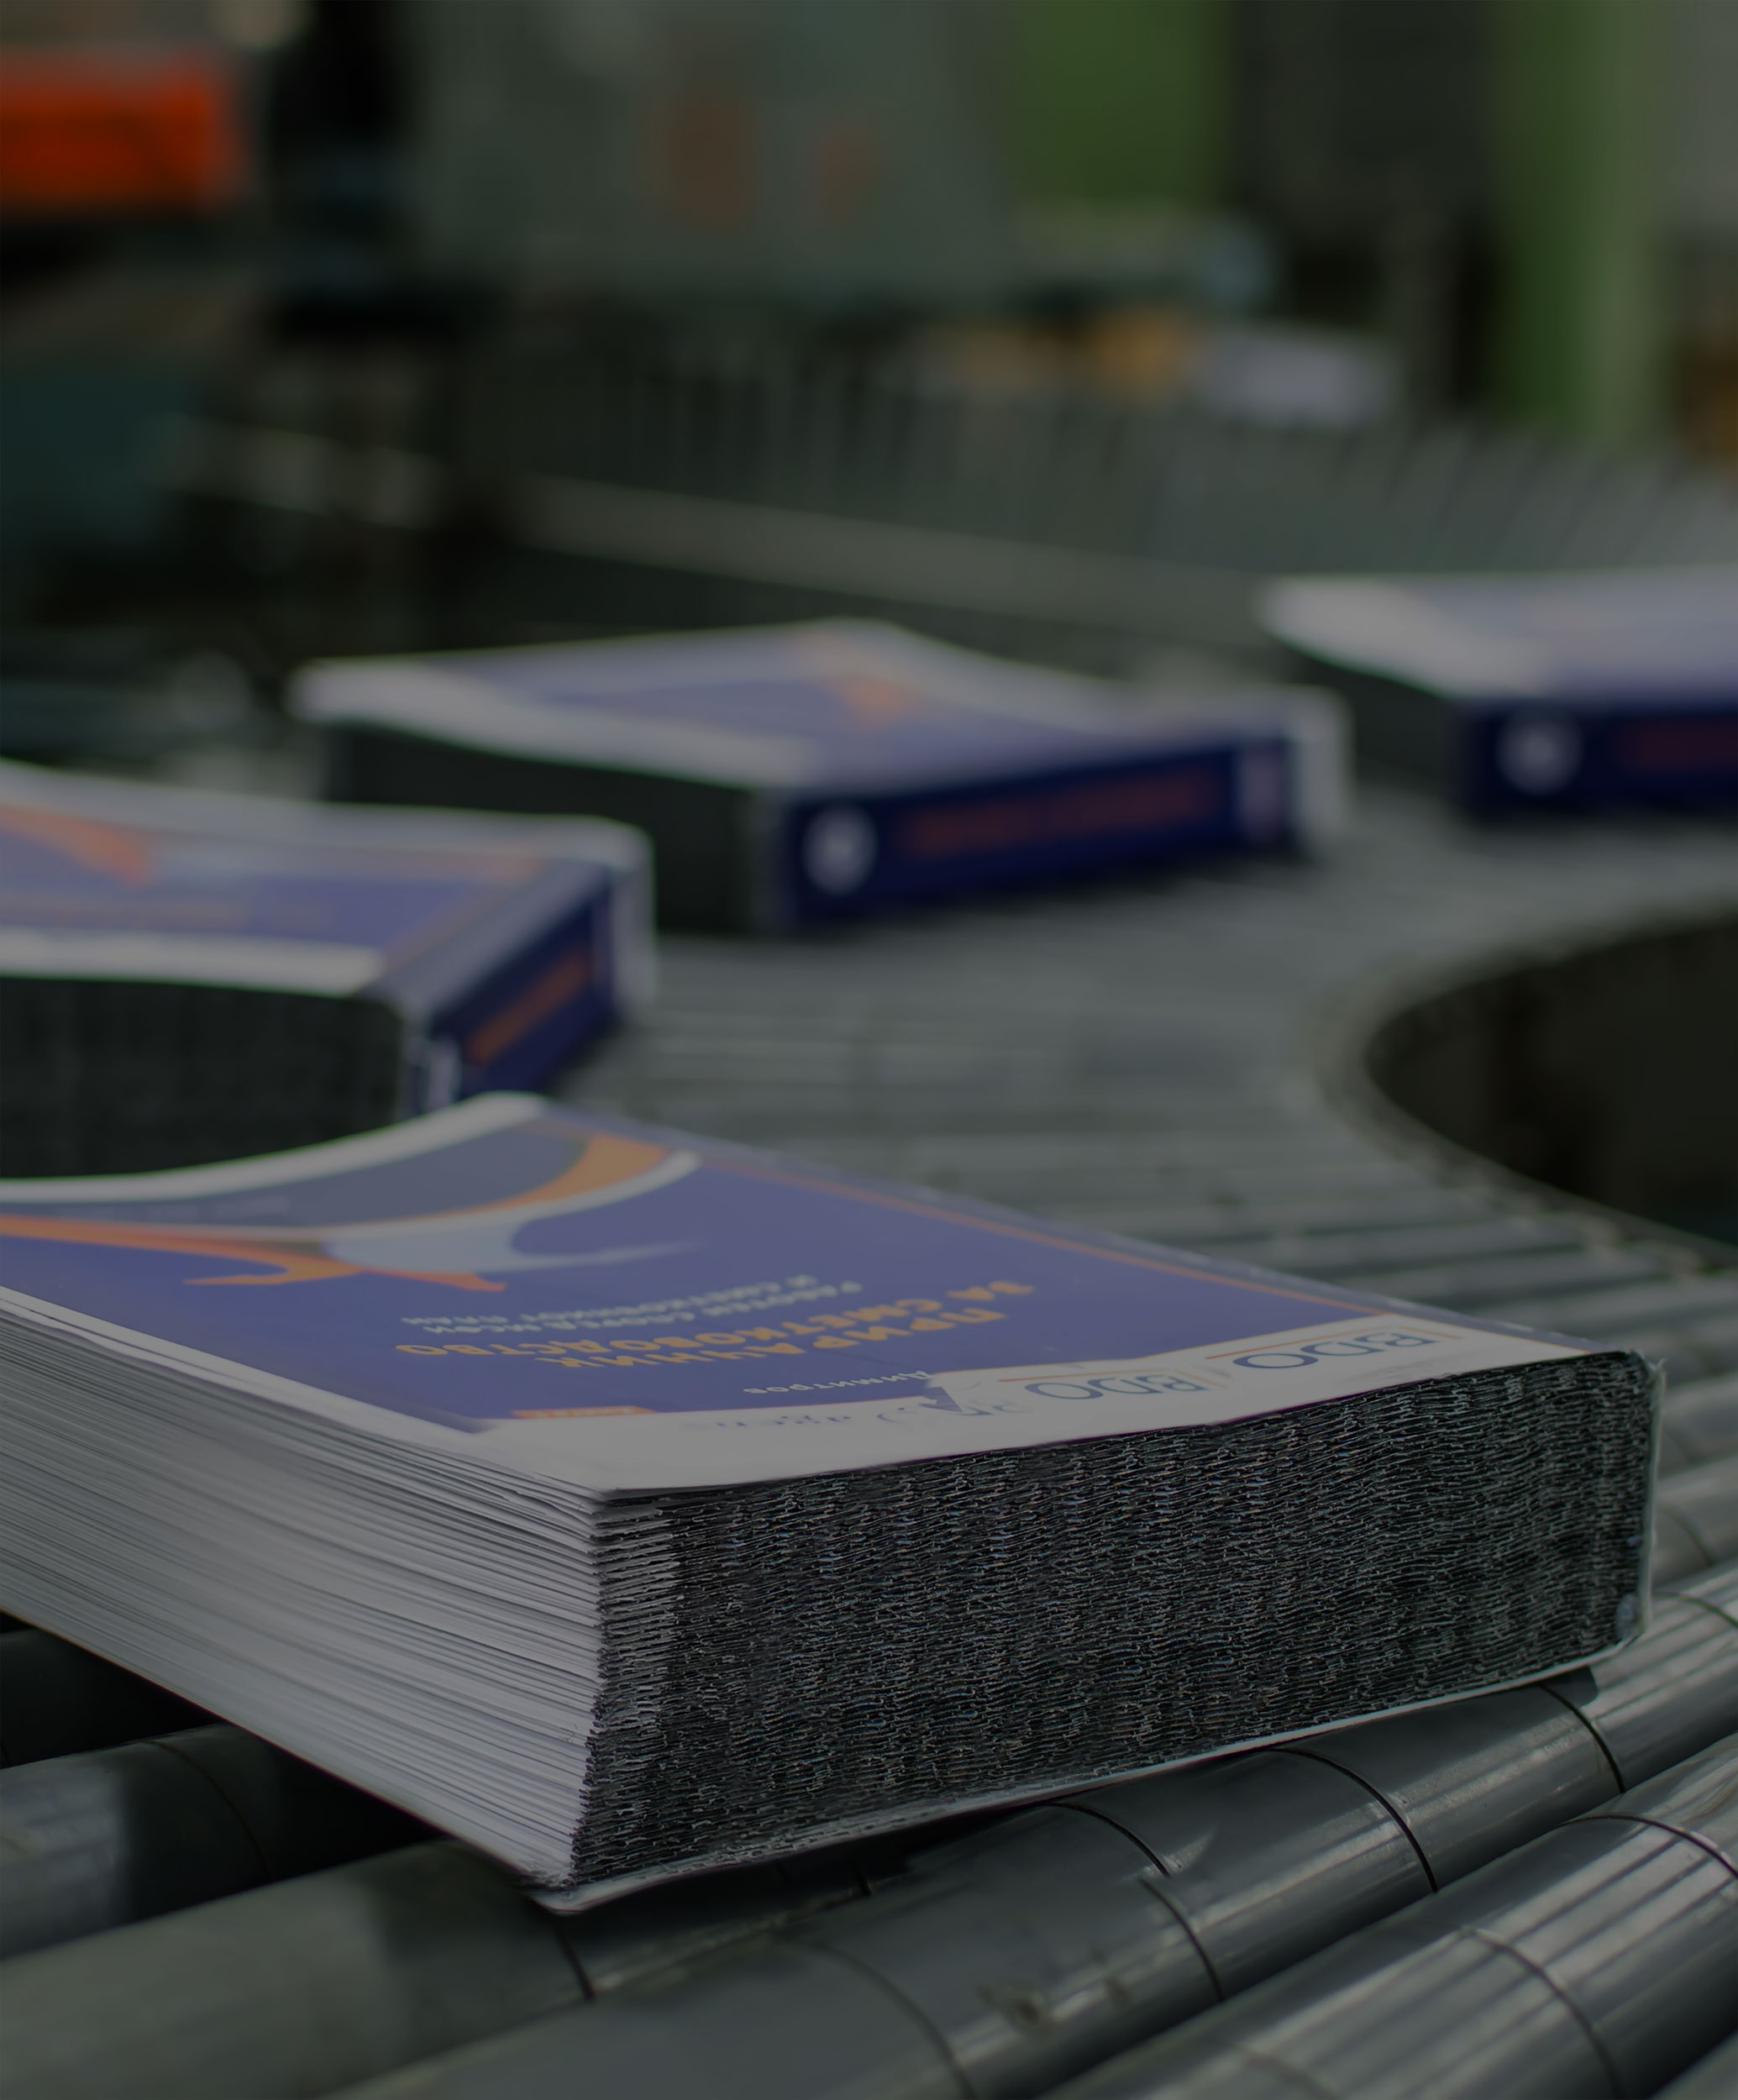 Production Services - Experts in commercial printing services, we can design, print, manage and store a number of solutions. These include, but are not limited to:- Newsletters, Flyers,Brochures- Promotional Products- Booklets, Magazines,Catalogs- Multi-Color Labels, Tags,Decals